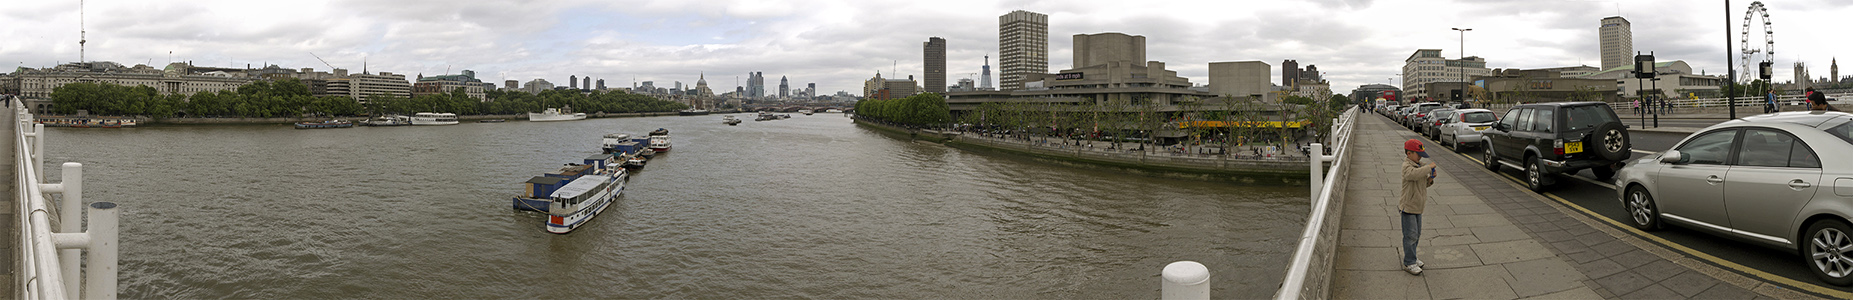 Waterloo Bridge London